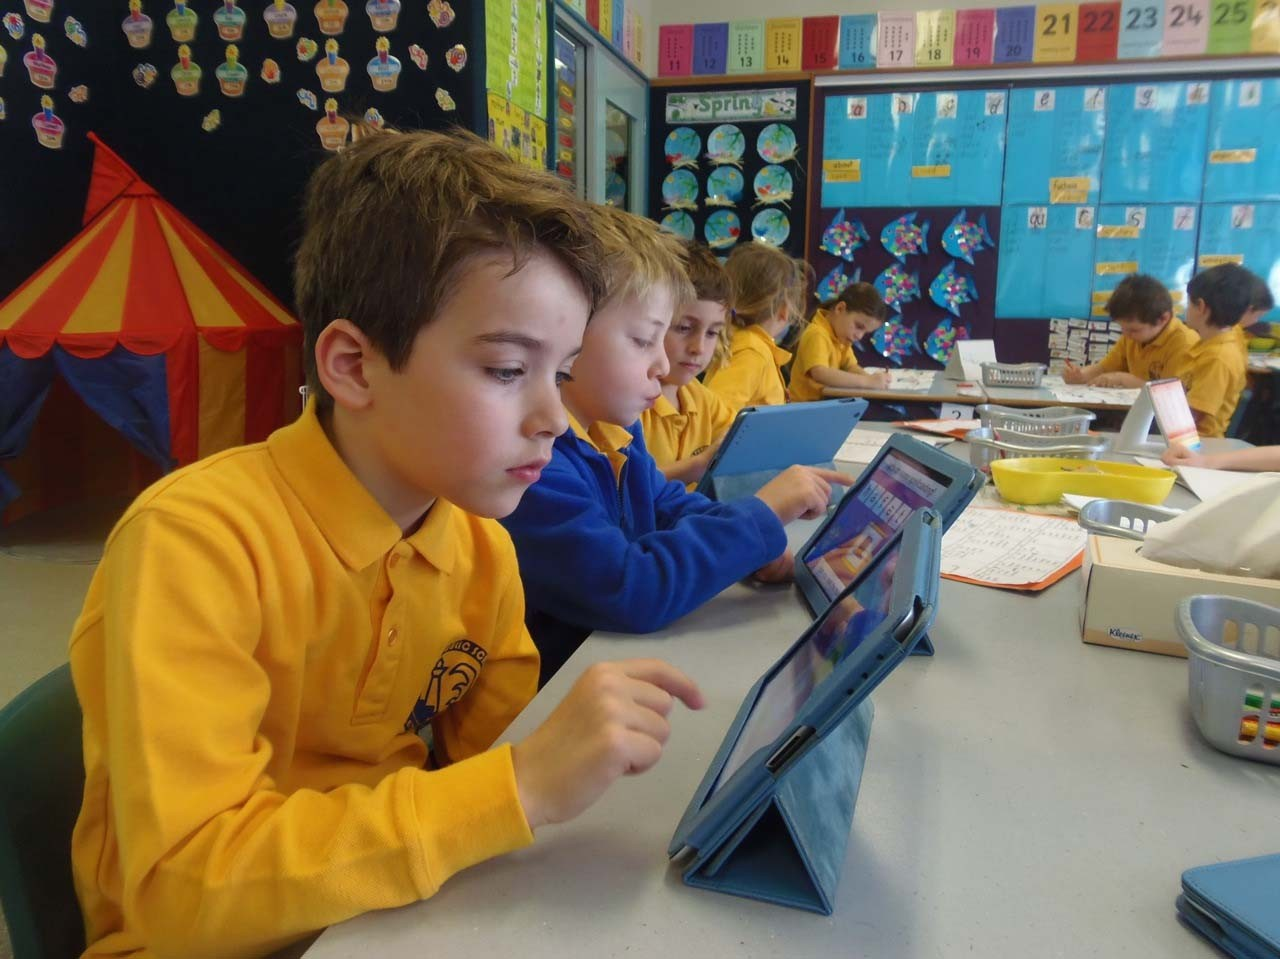 Kindergarten students using iPad.